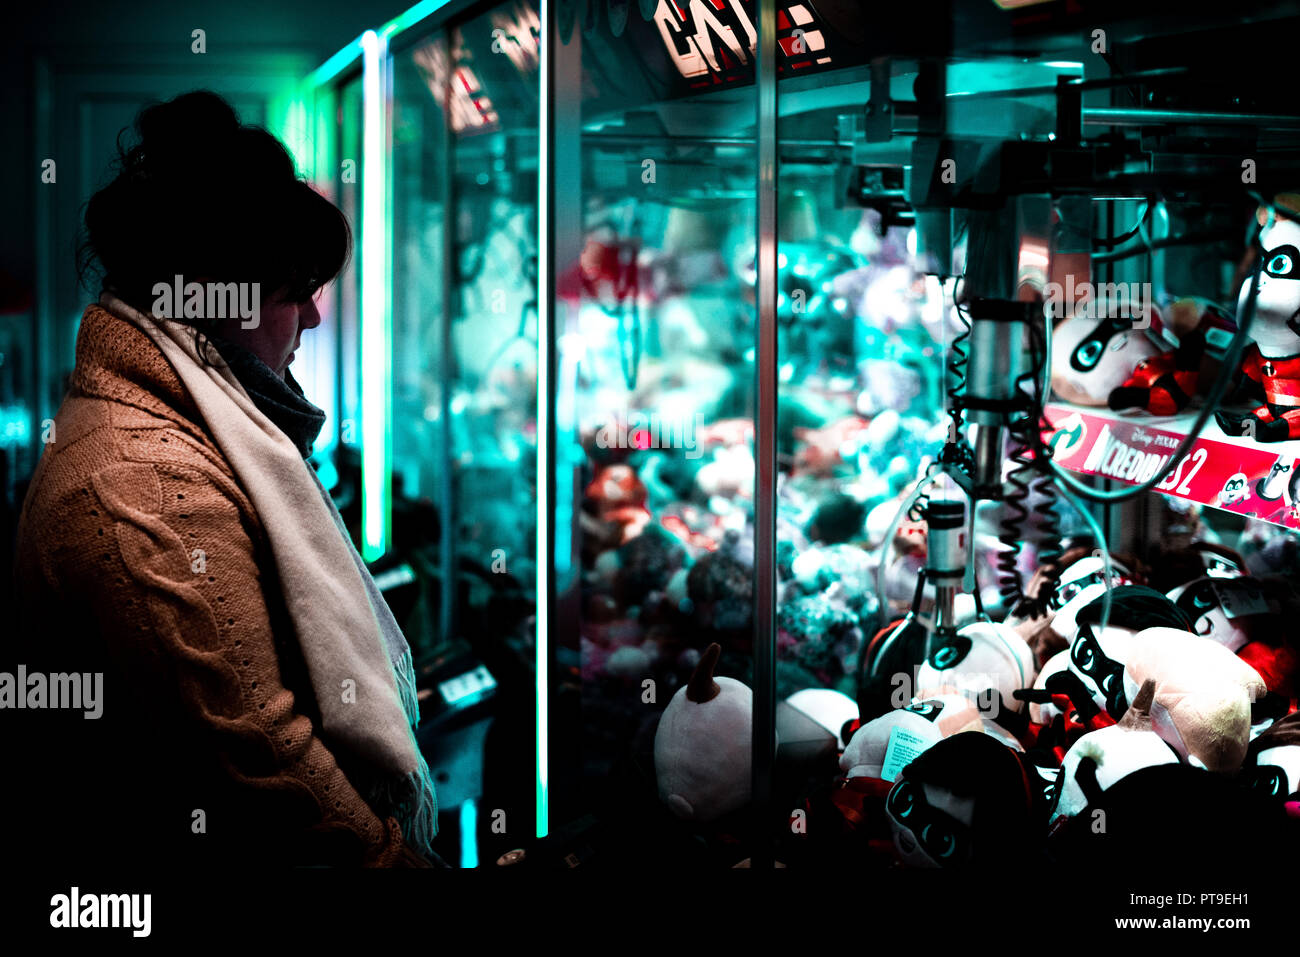 Depressive scene of a woman inside an amusements in the UK playing and losing on a claw machine against a blue light. - Stock Image